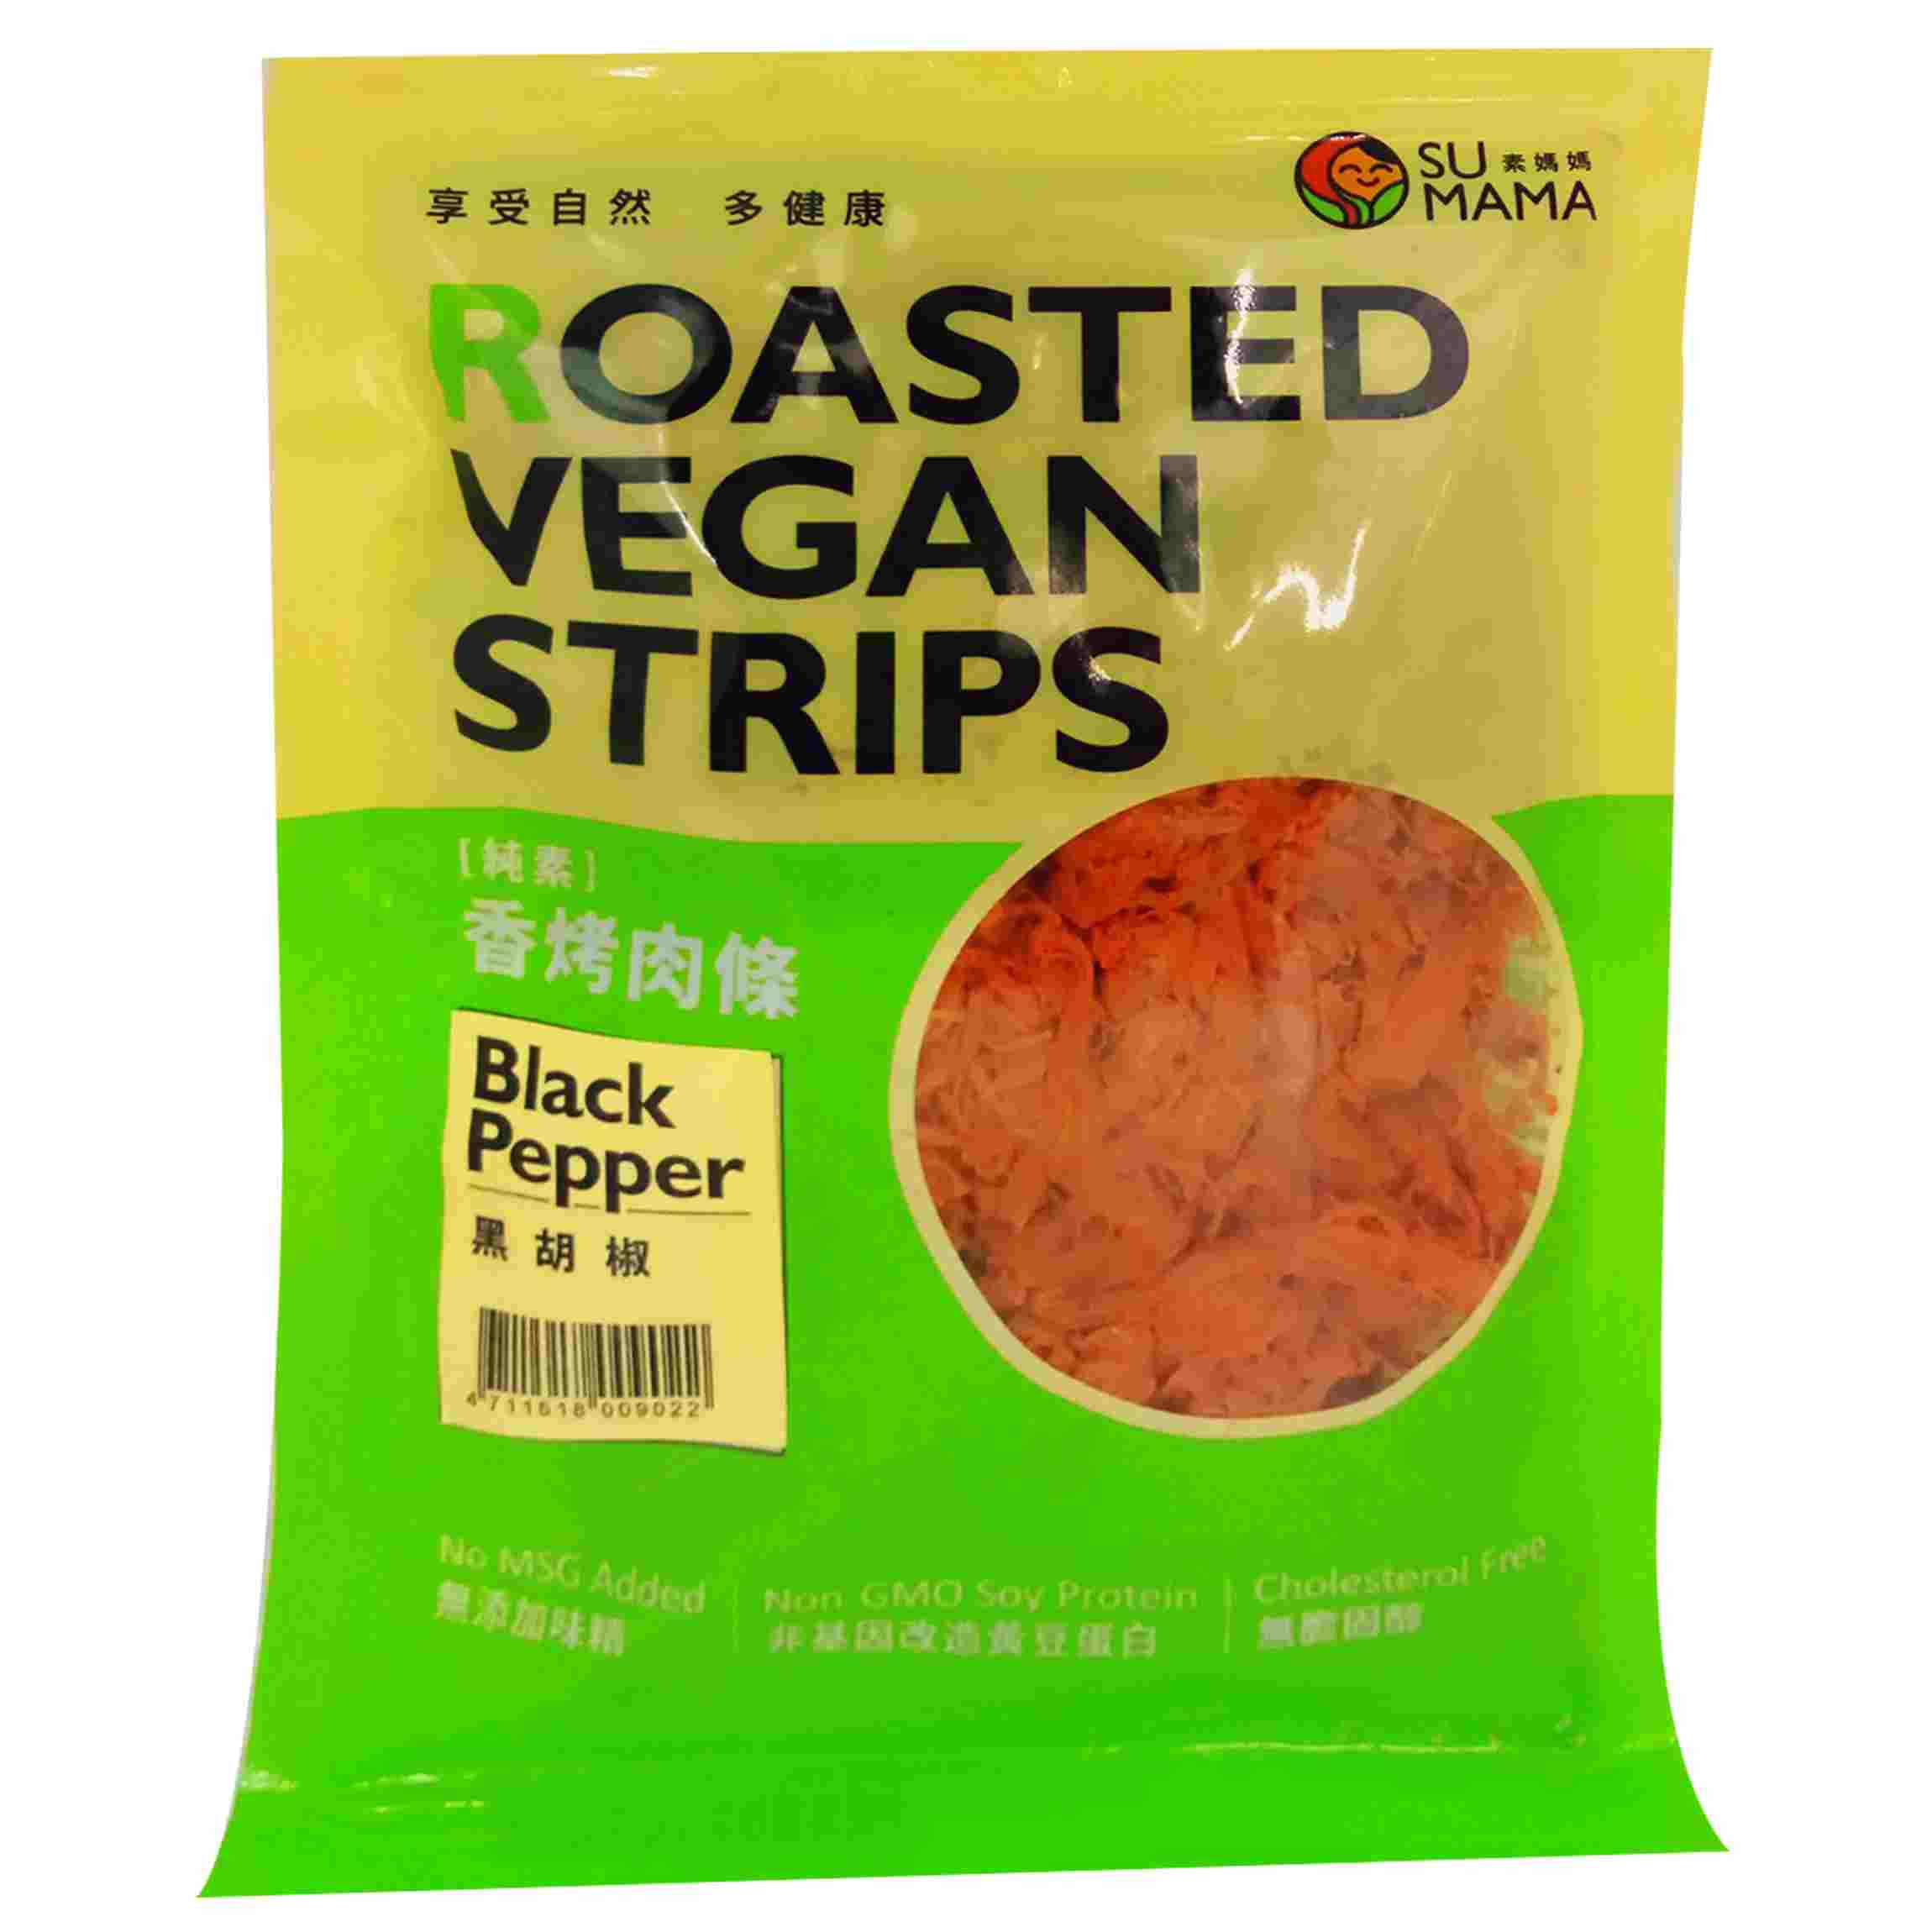 Image Roasted Vegan Strips 素妈妈 - 香烤肉條 (黑胡椒) 100grams